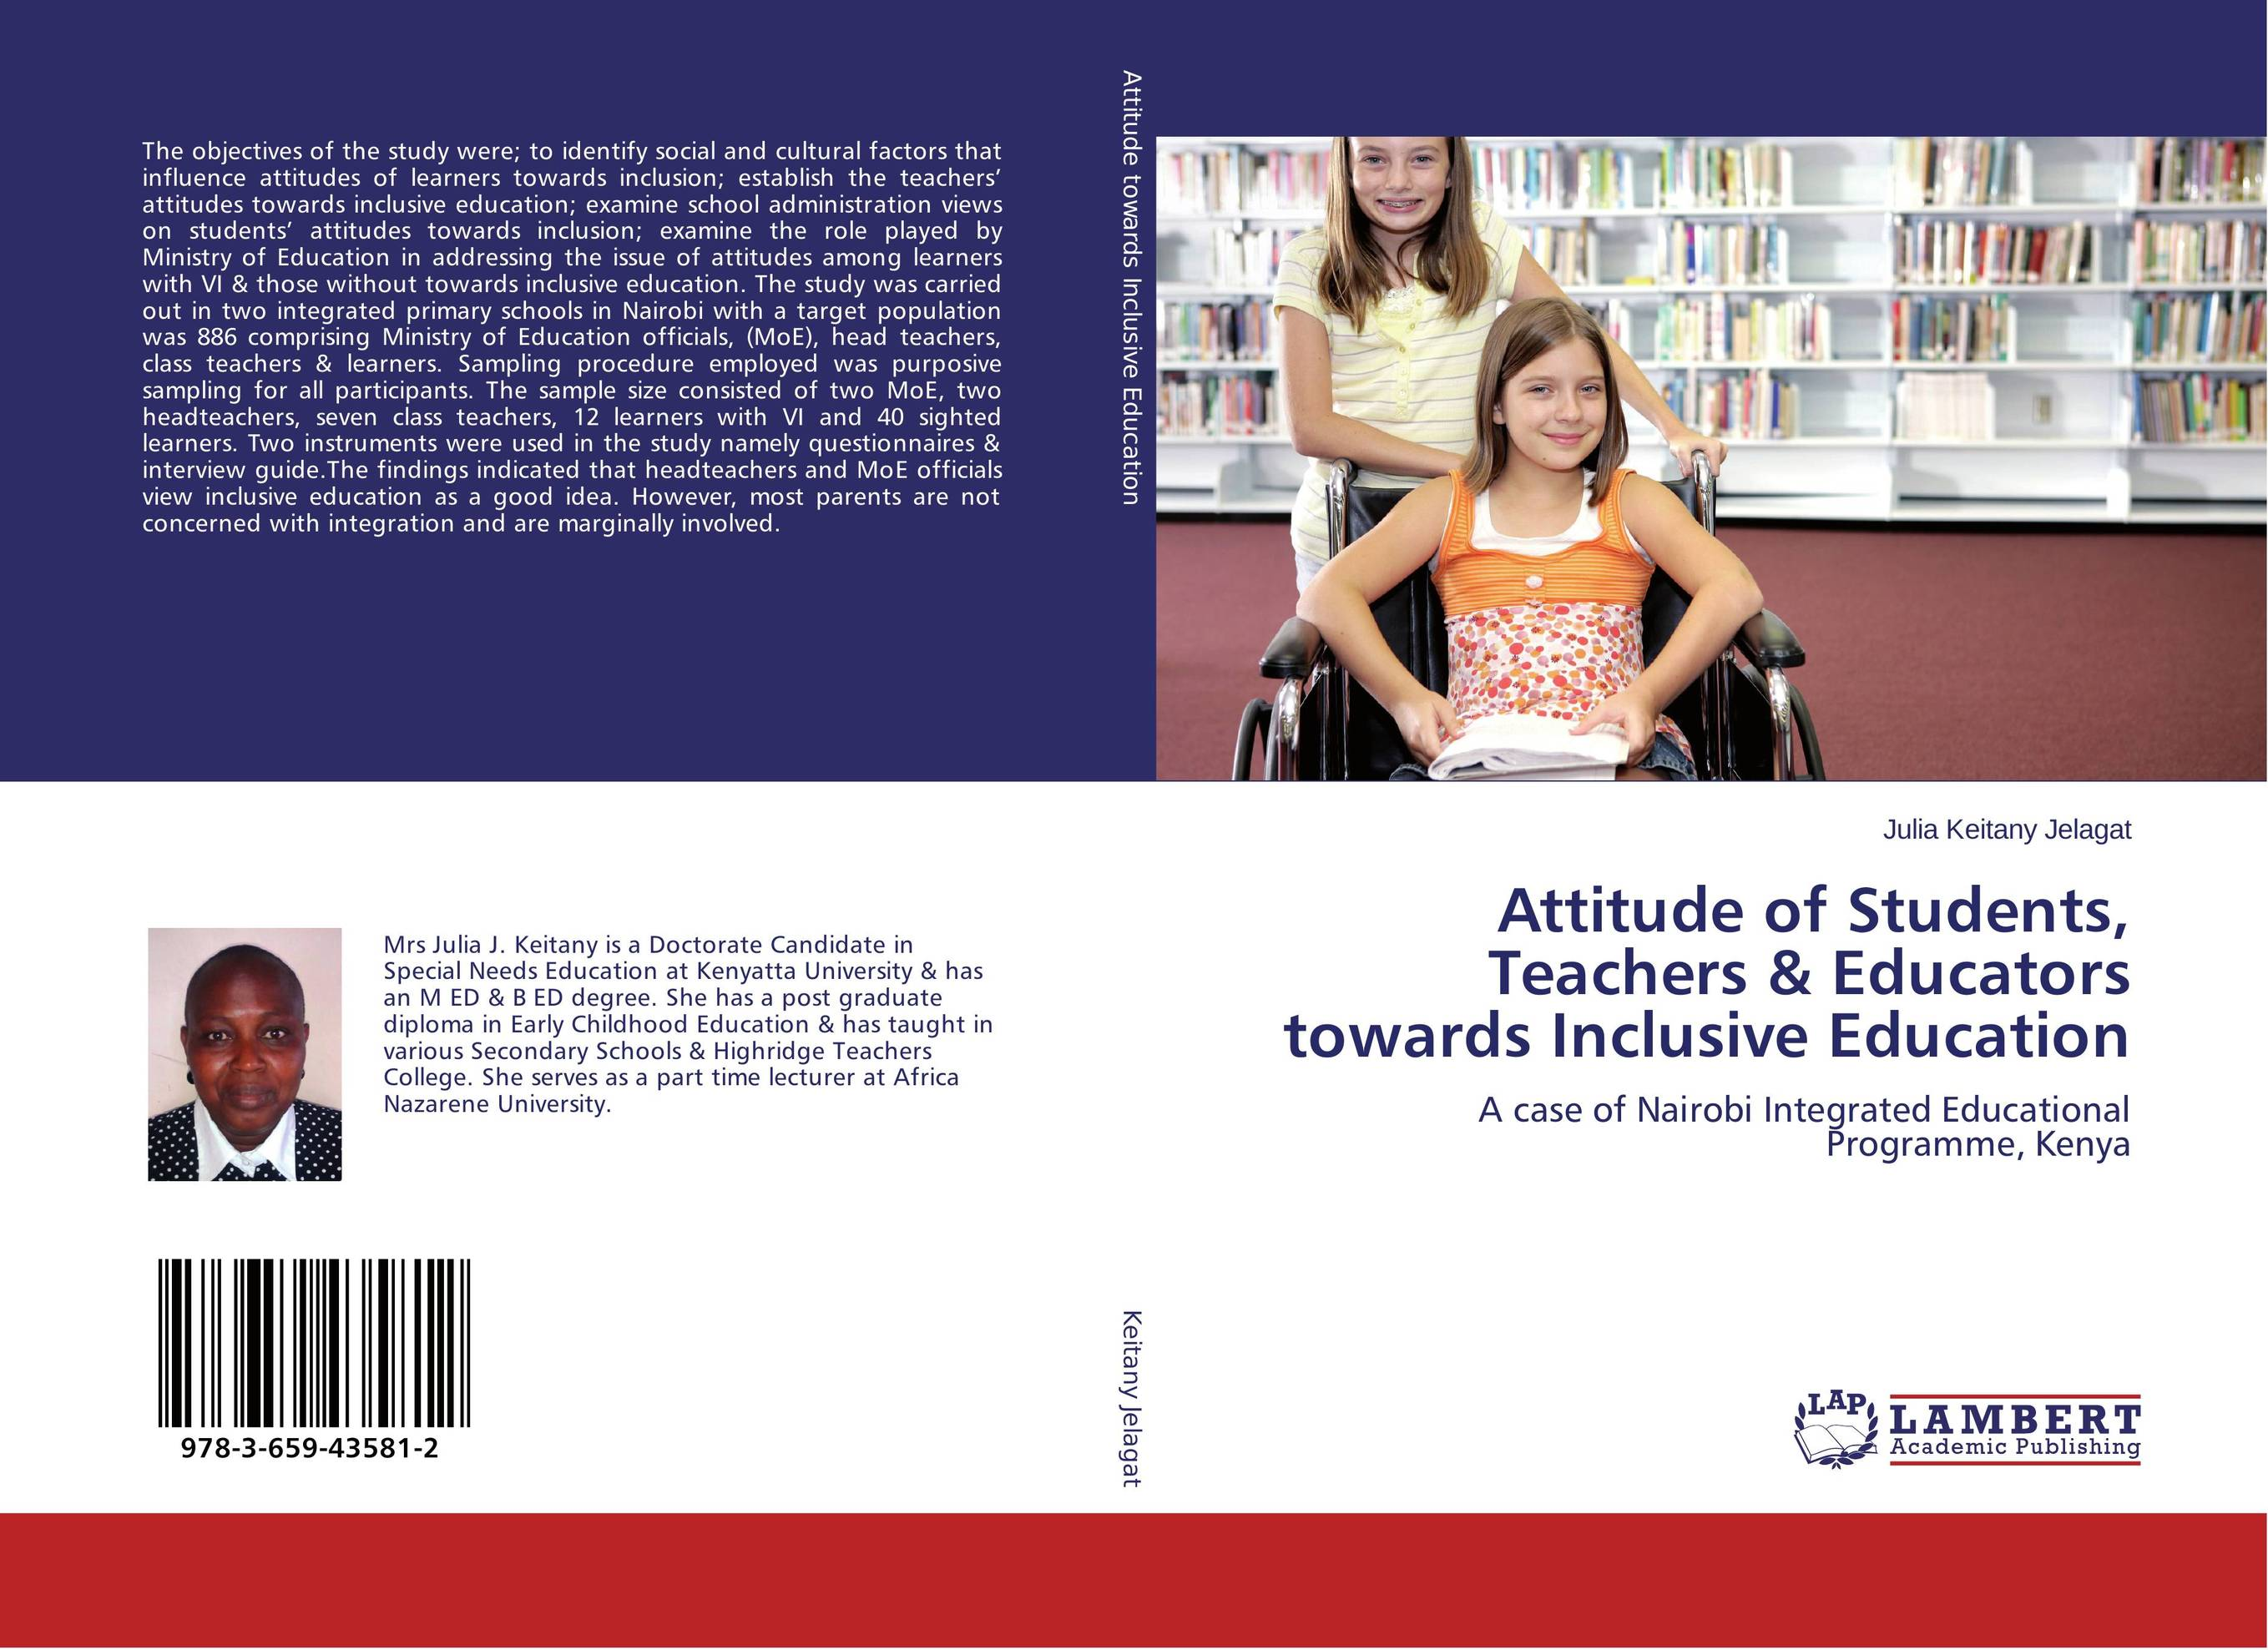 Attitude of Students, Teachers & Educators towards Inclusive Education